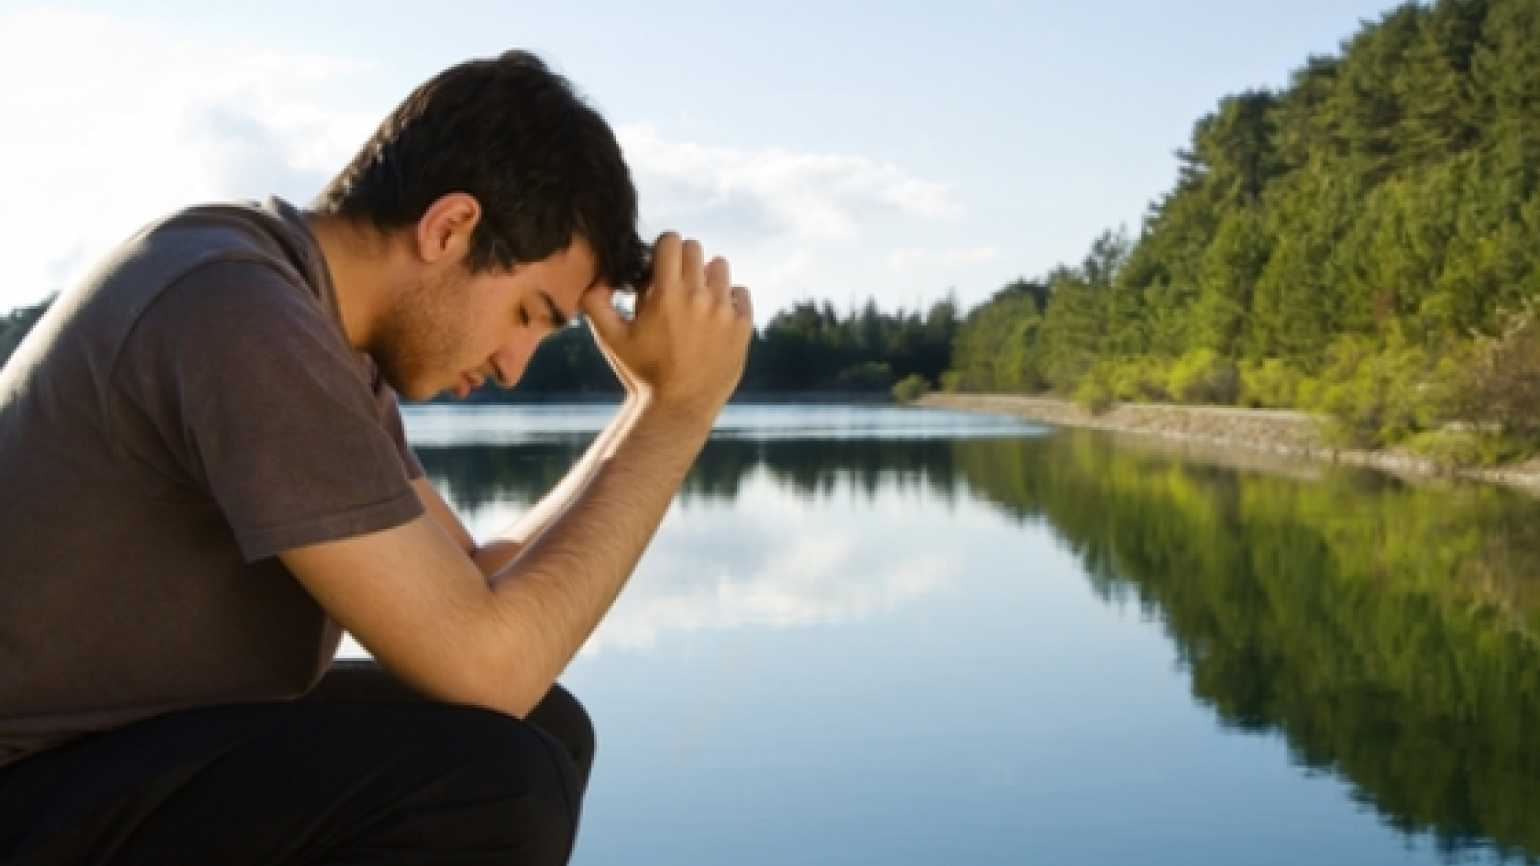 man praying in front of a lake with mountains behind him.